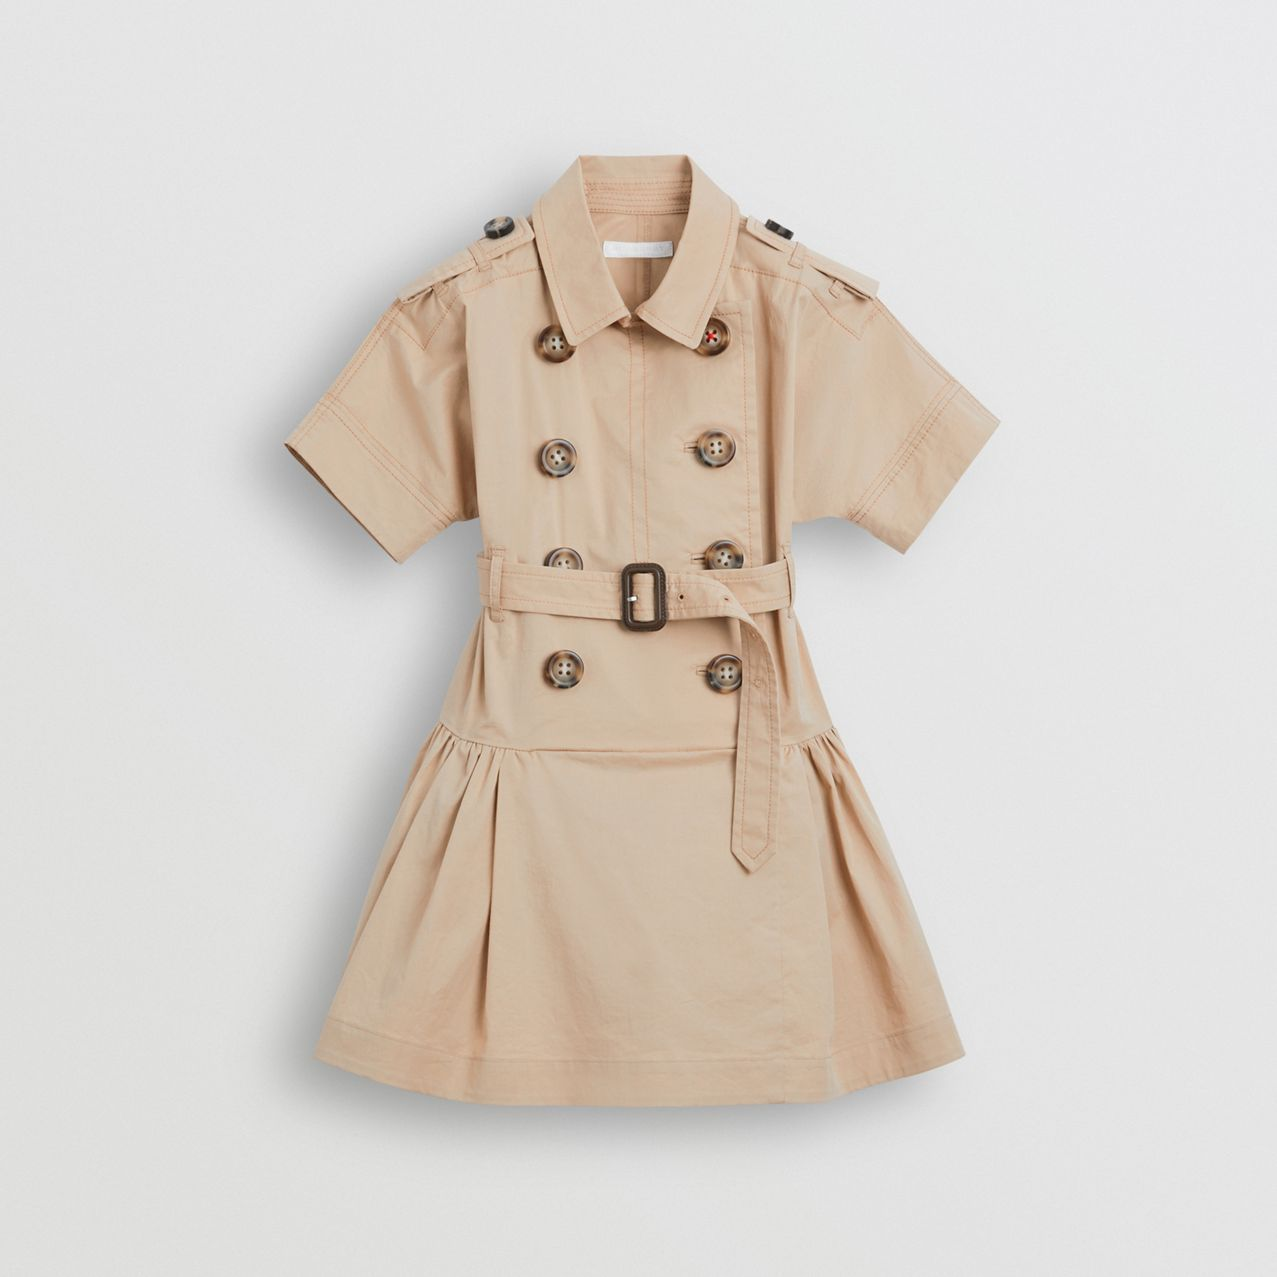 Girls Dresses Jumpsuits Burberry Trench Coat Dress Trench Dress Shopping Outfit [ 1277 x 1277 Pixel ]